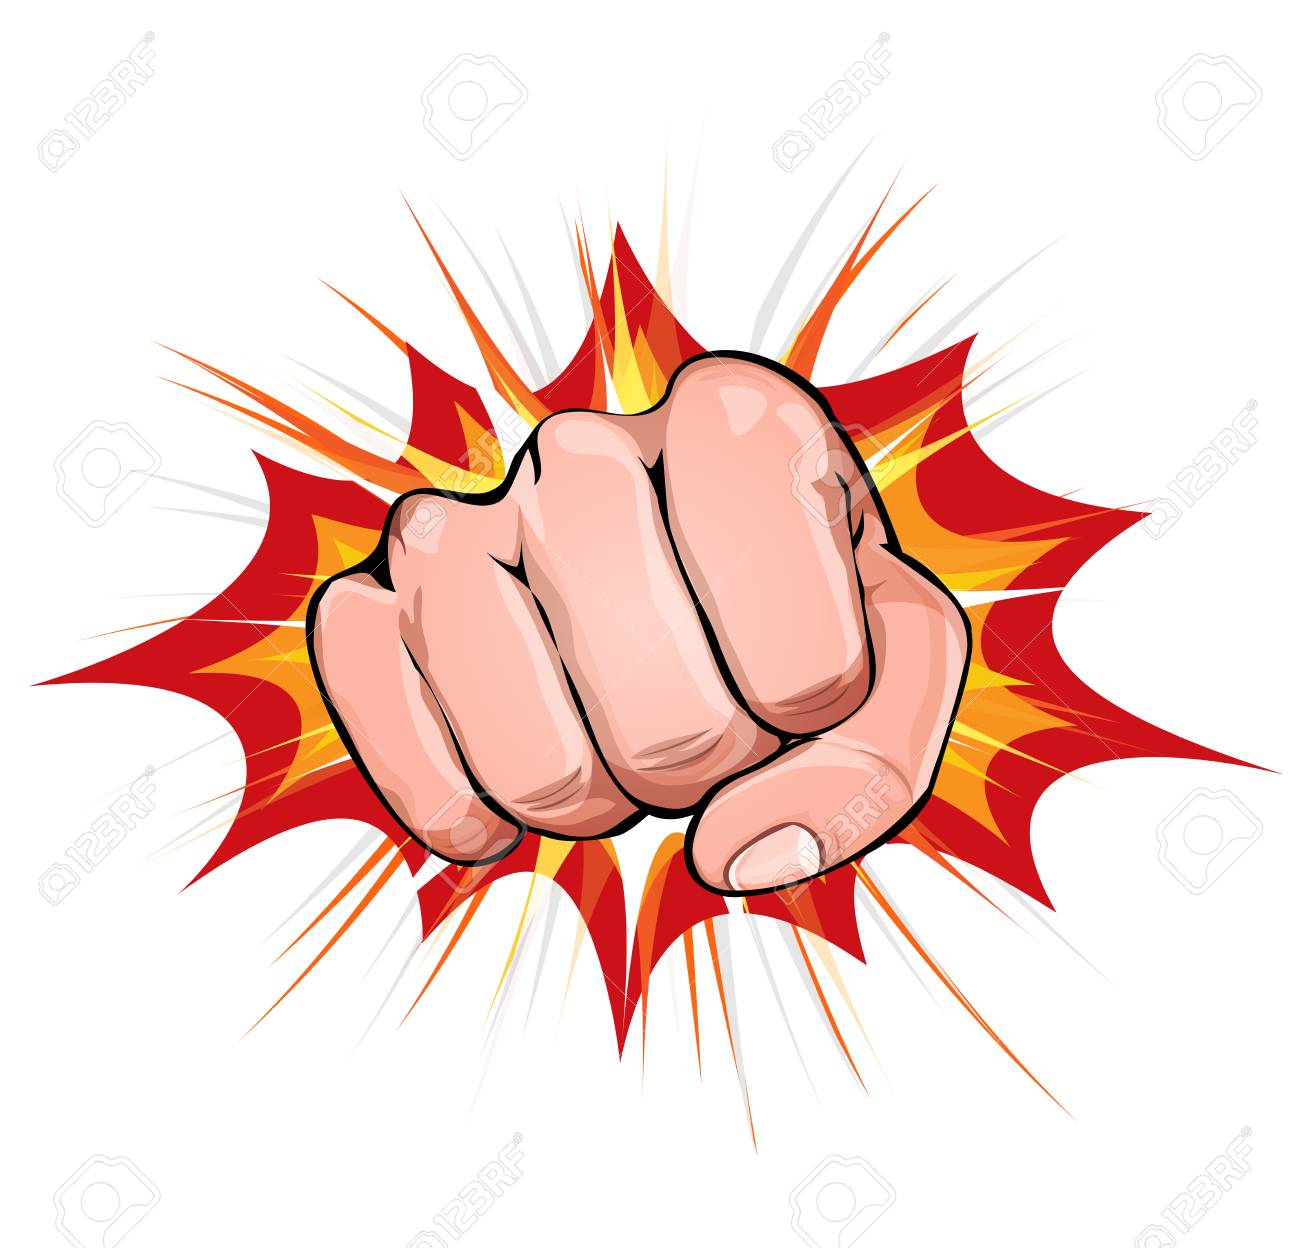 Illustration Of A Powerful Fist Punching On Explosion Background Royalty Free Cliparts Vectors And Stock Illustration Image 89253092